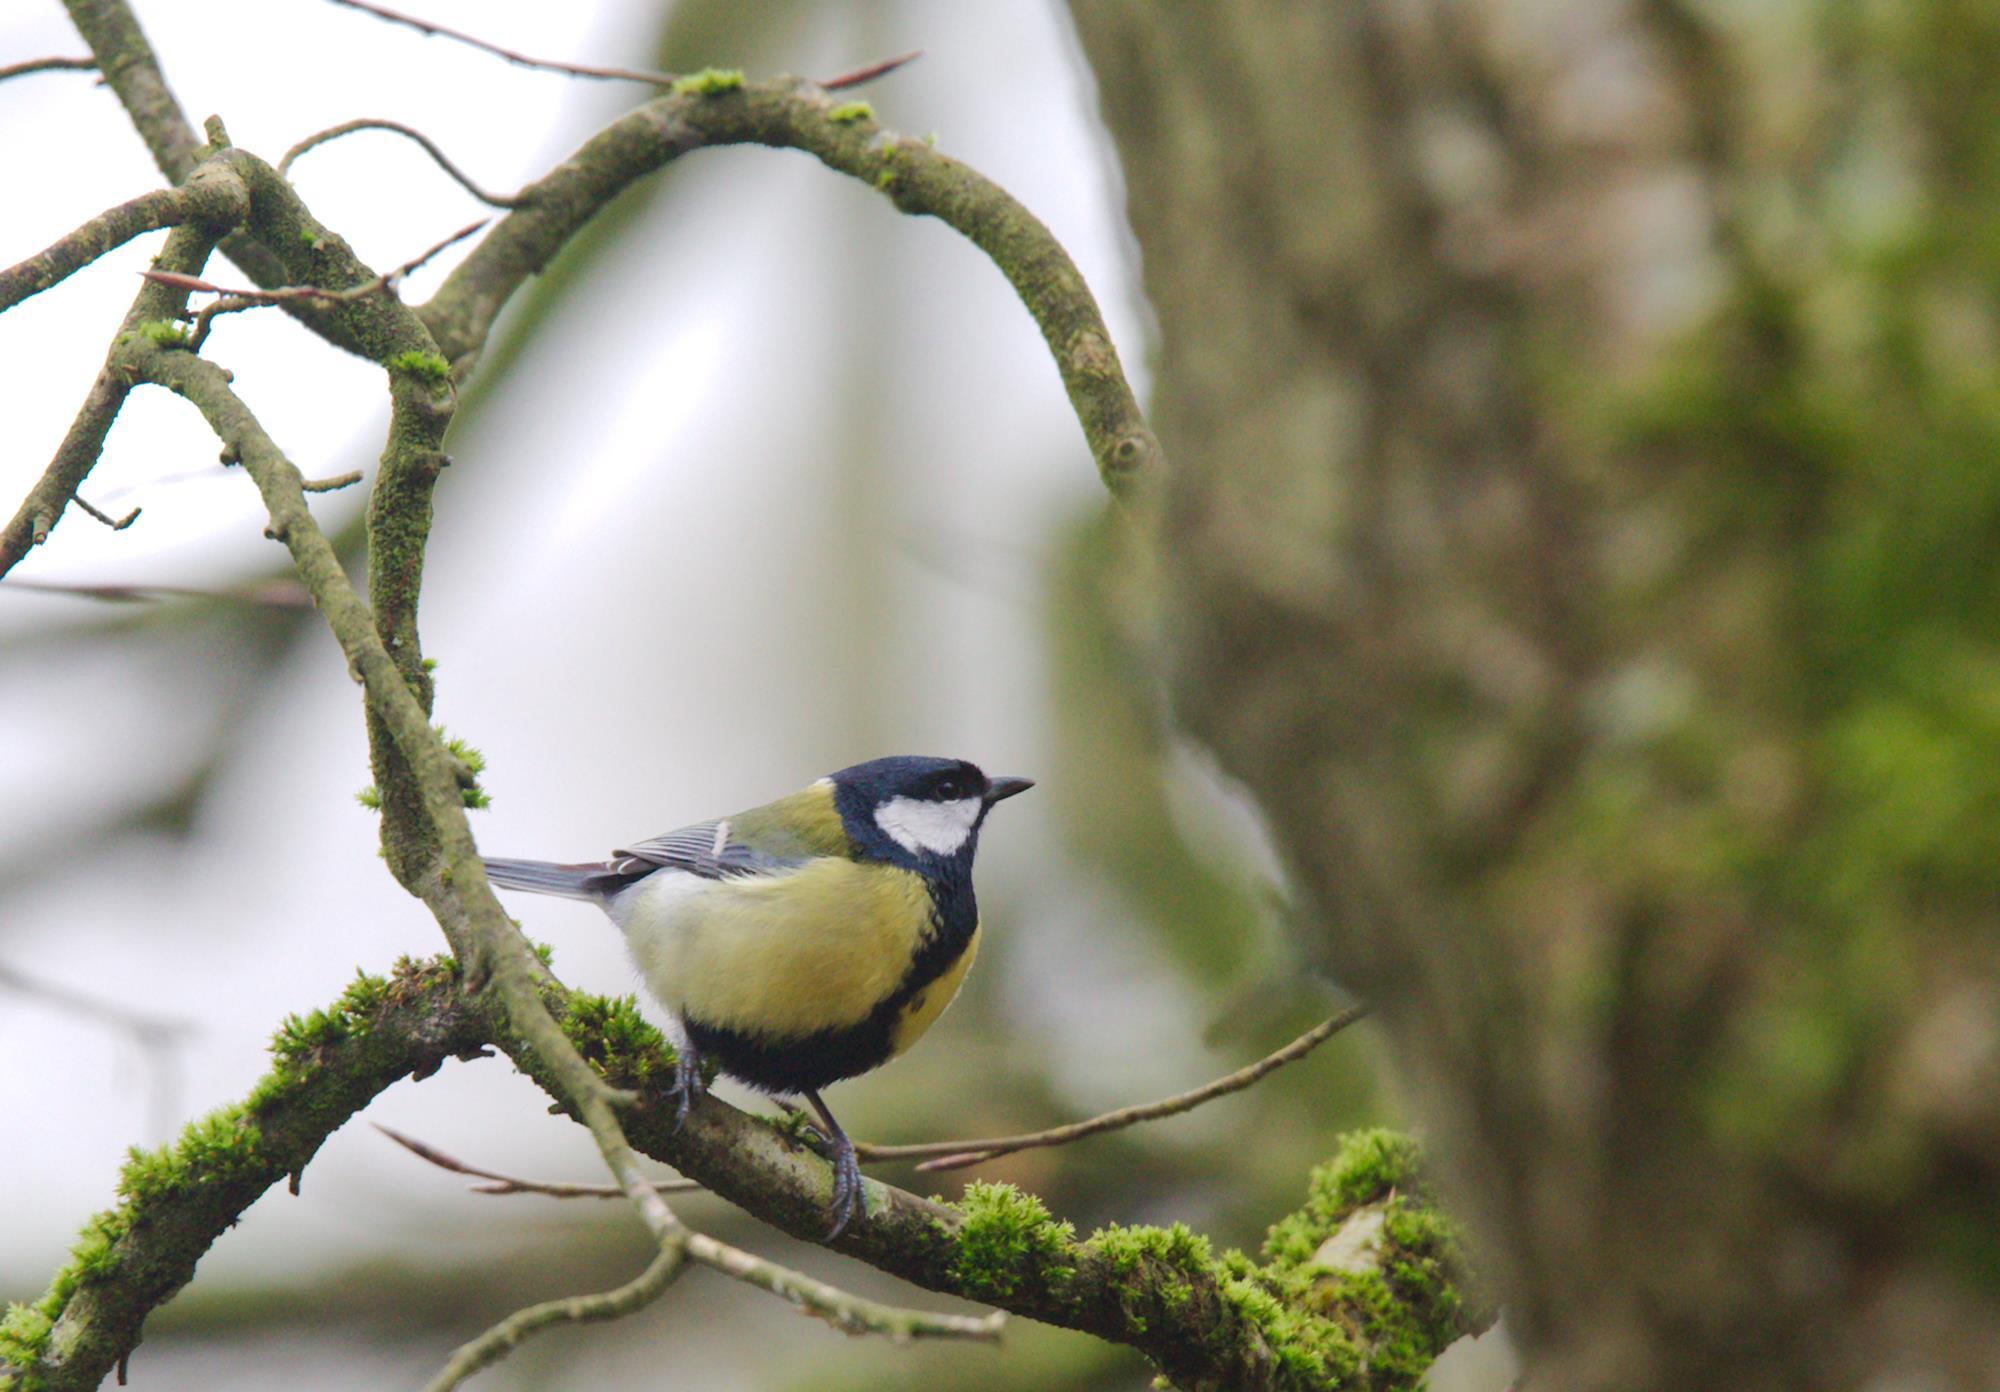 Musvit, Parus major